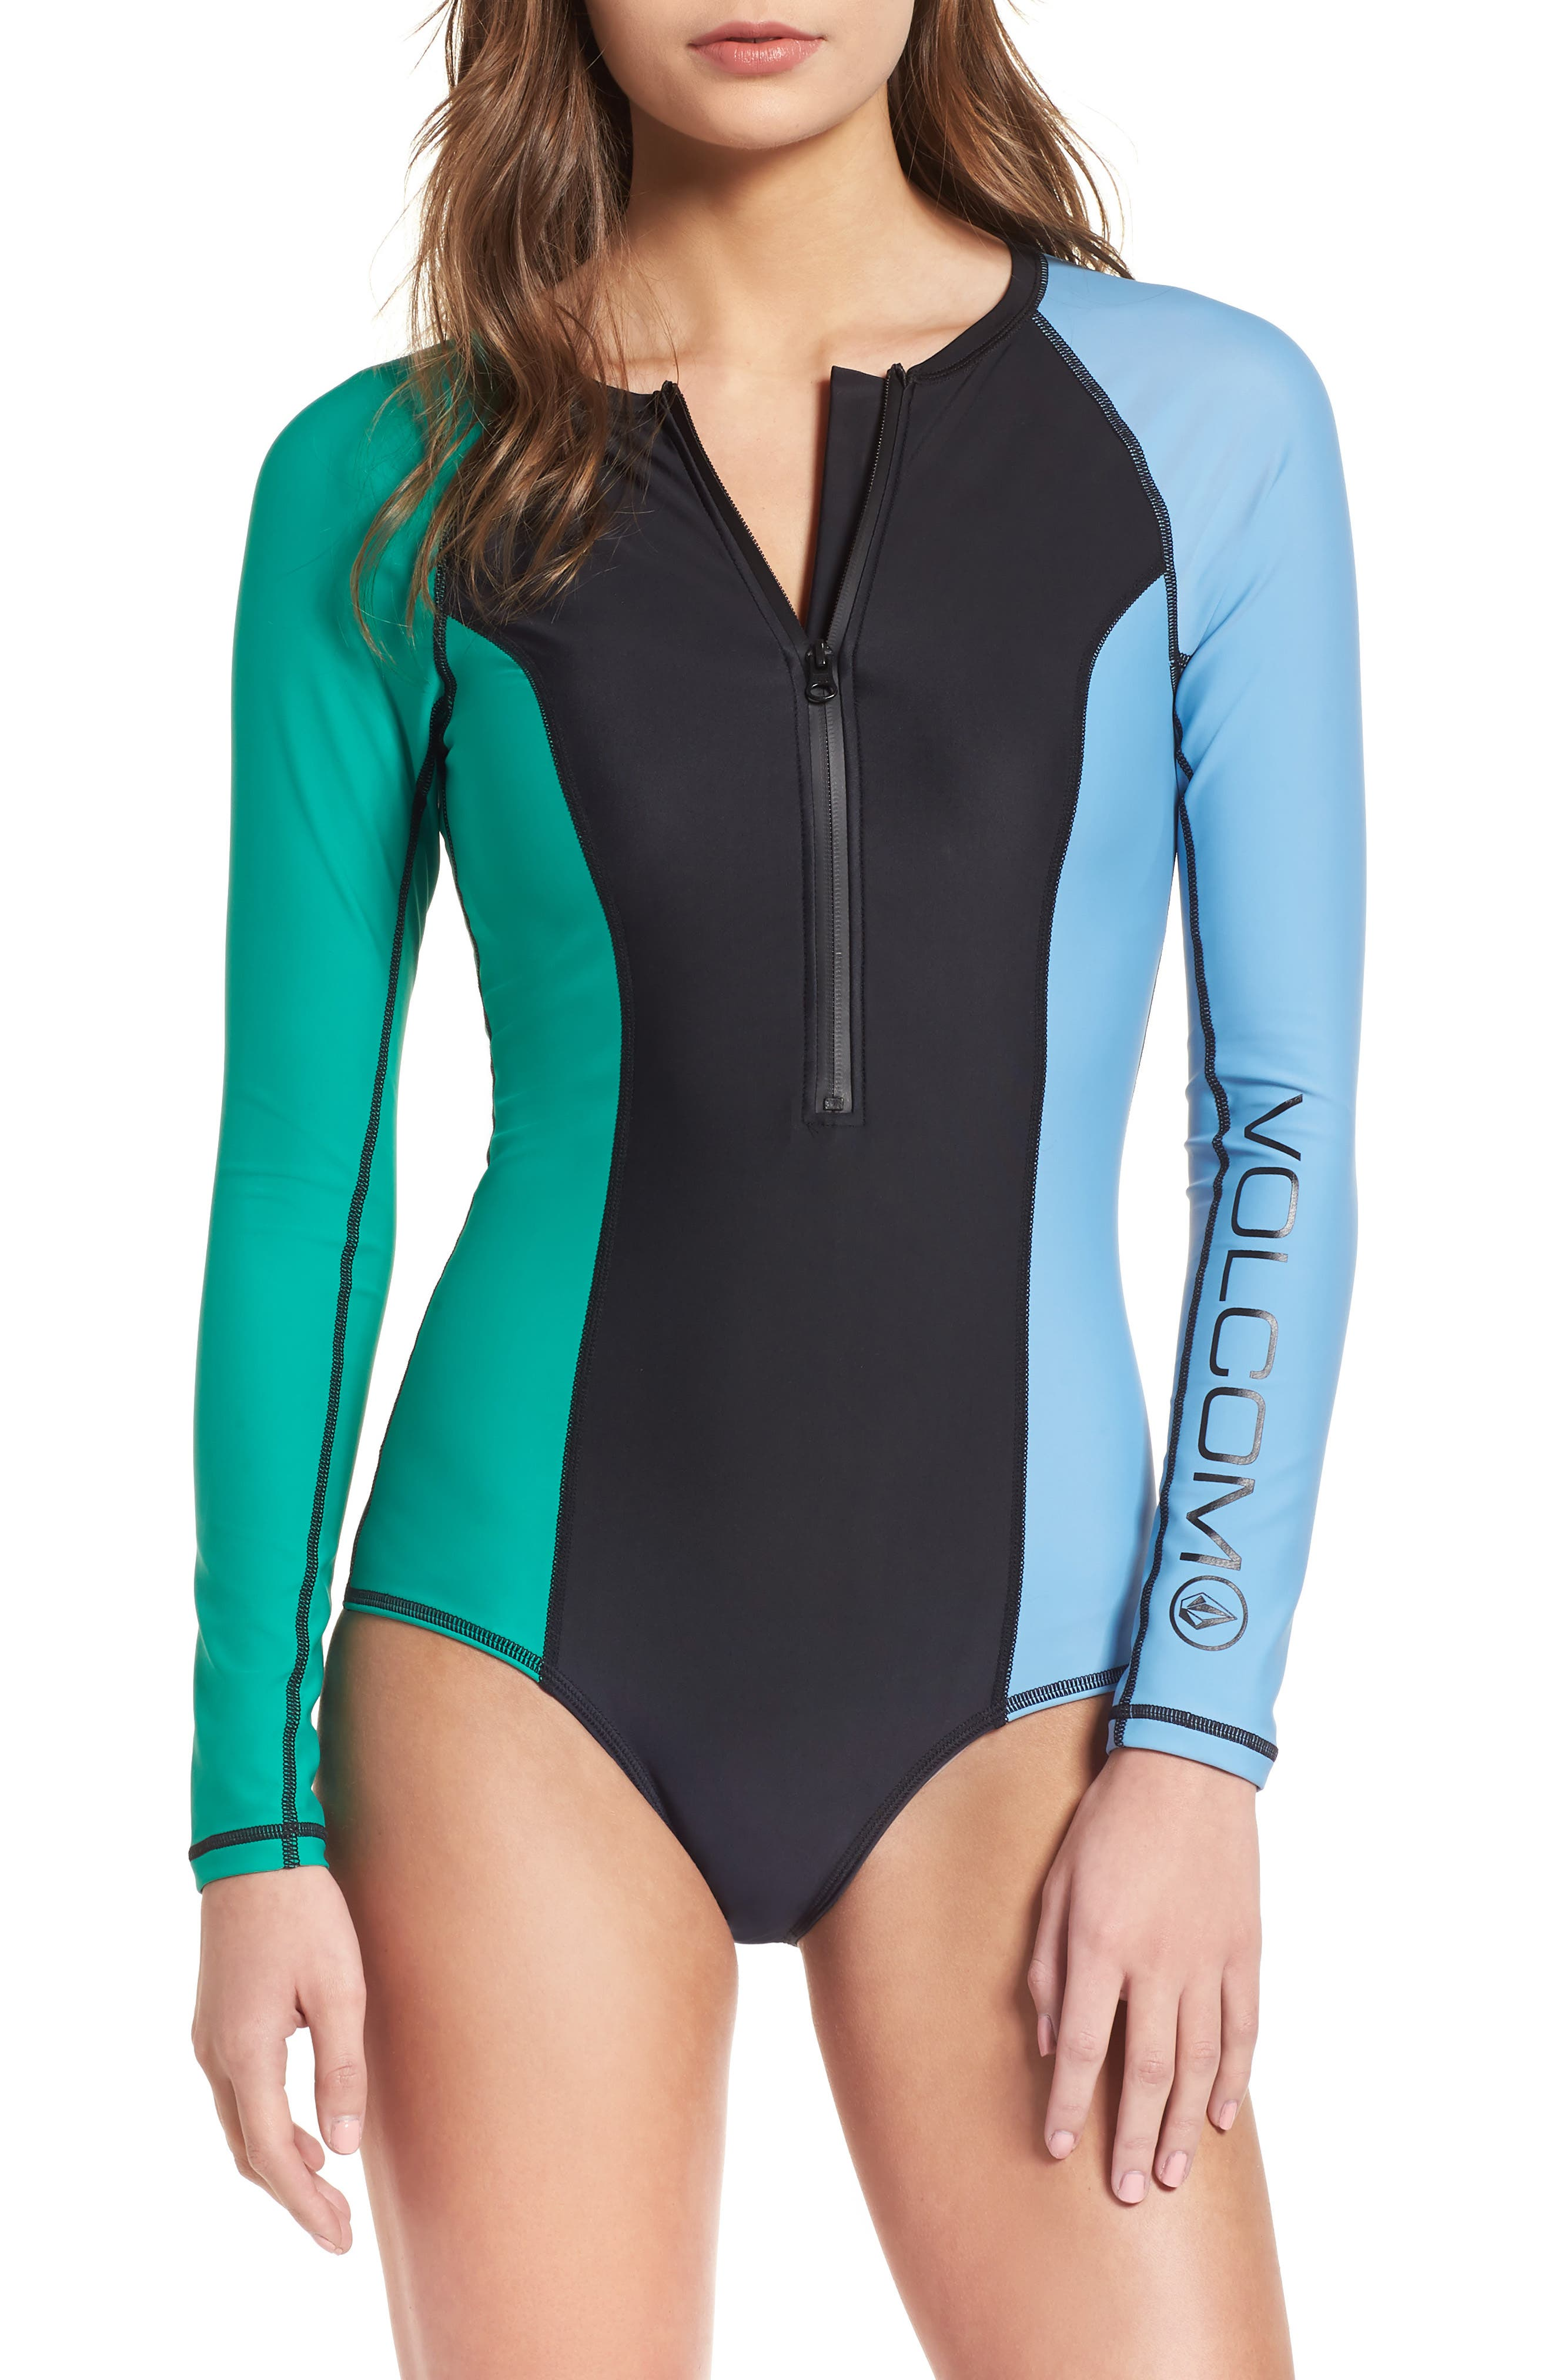 Simply Solid Long Sleeve One-Piece Swimsuit,                             Main thumbnail 1, color,                             307